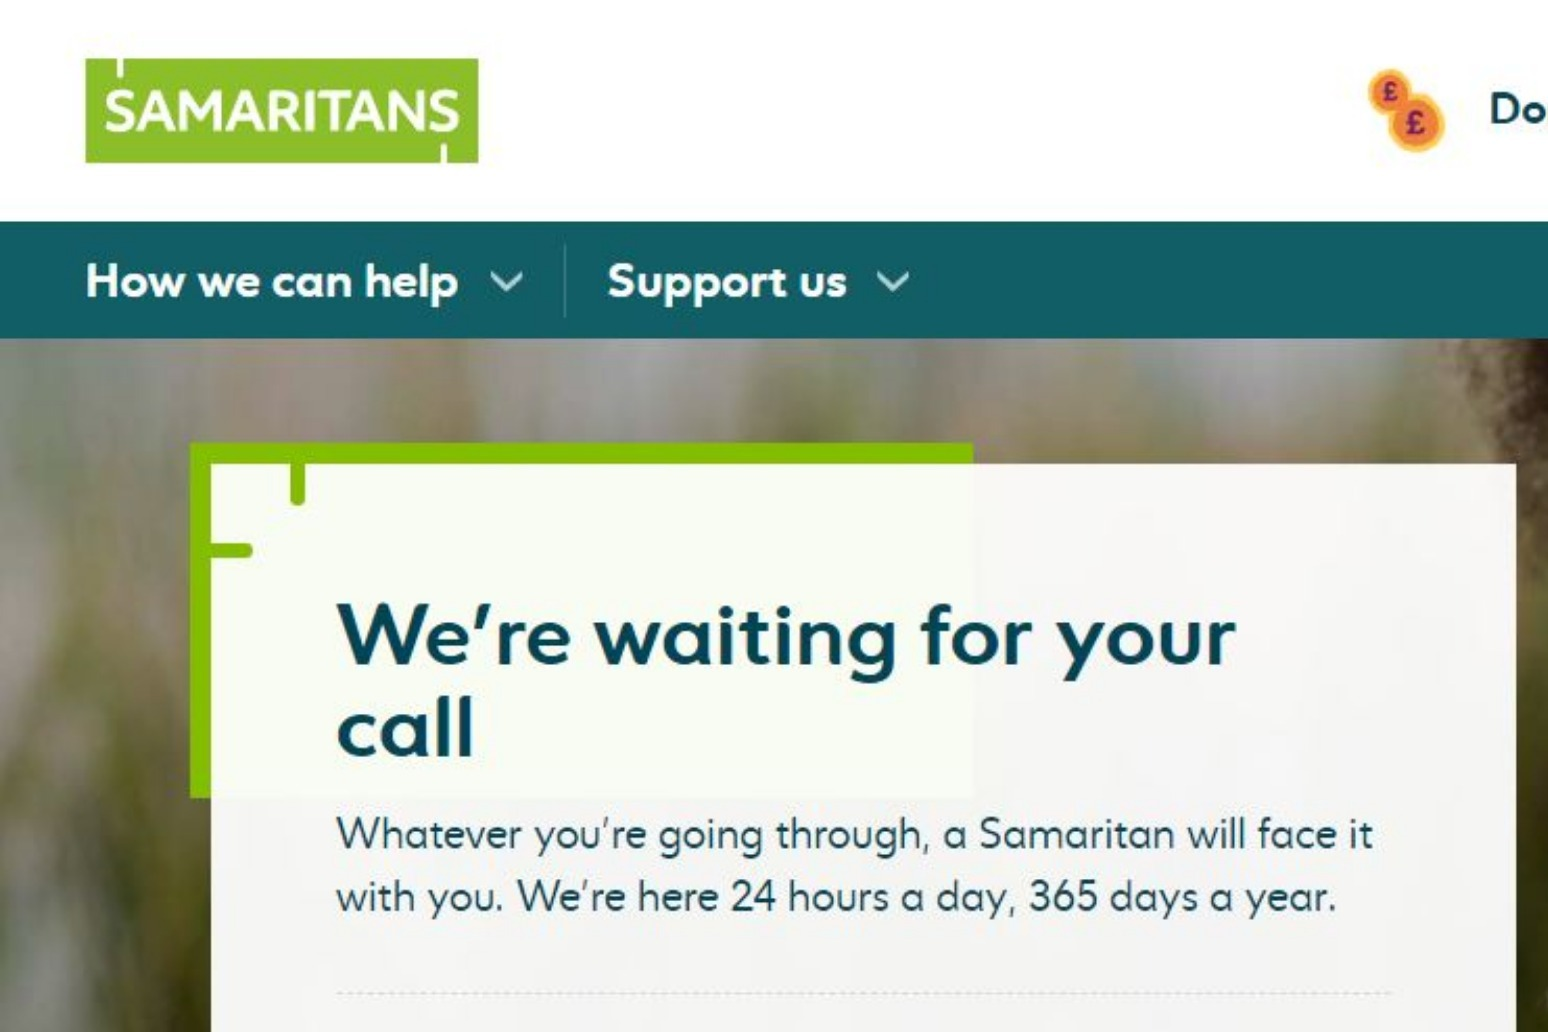 New 'measures' at Samaritans amid reports of volunteers meeting callers for sex